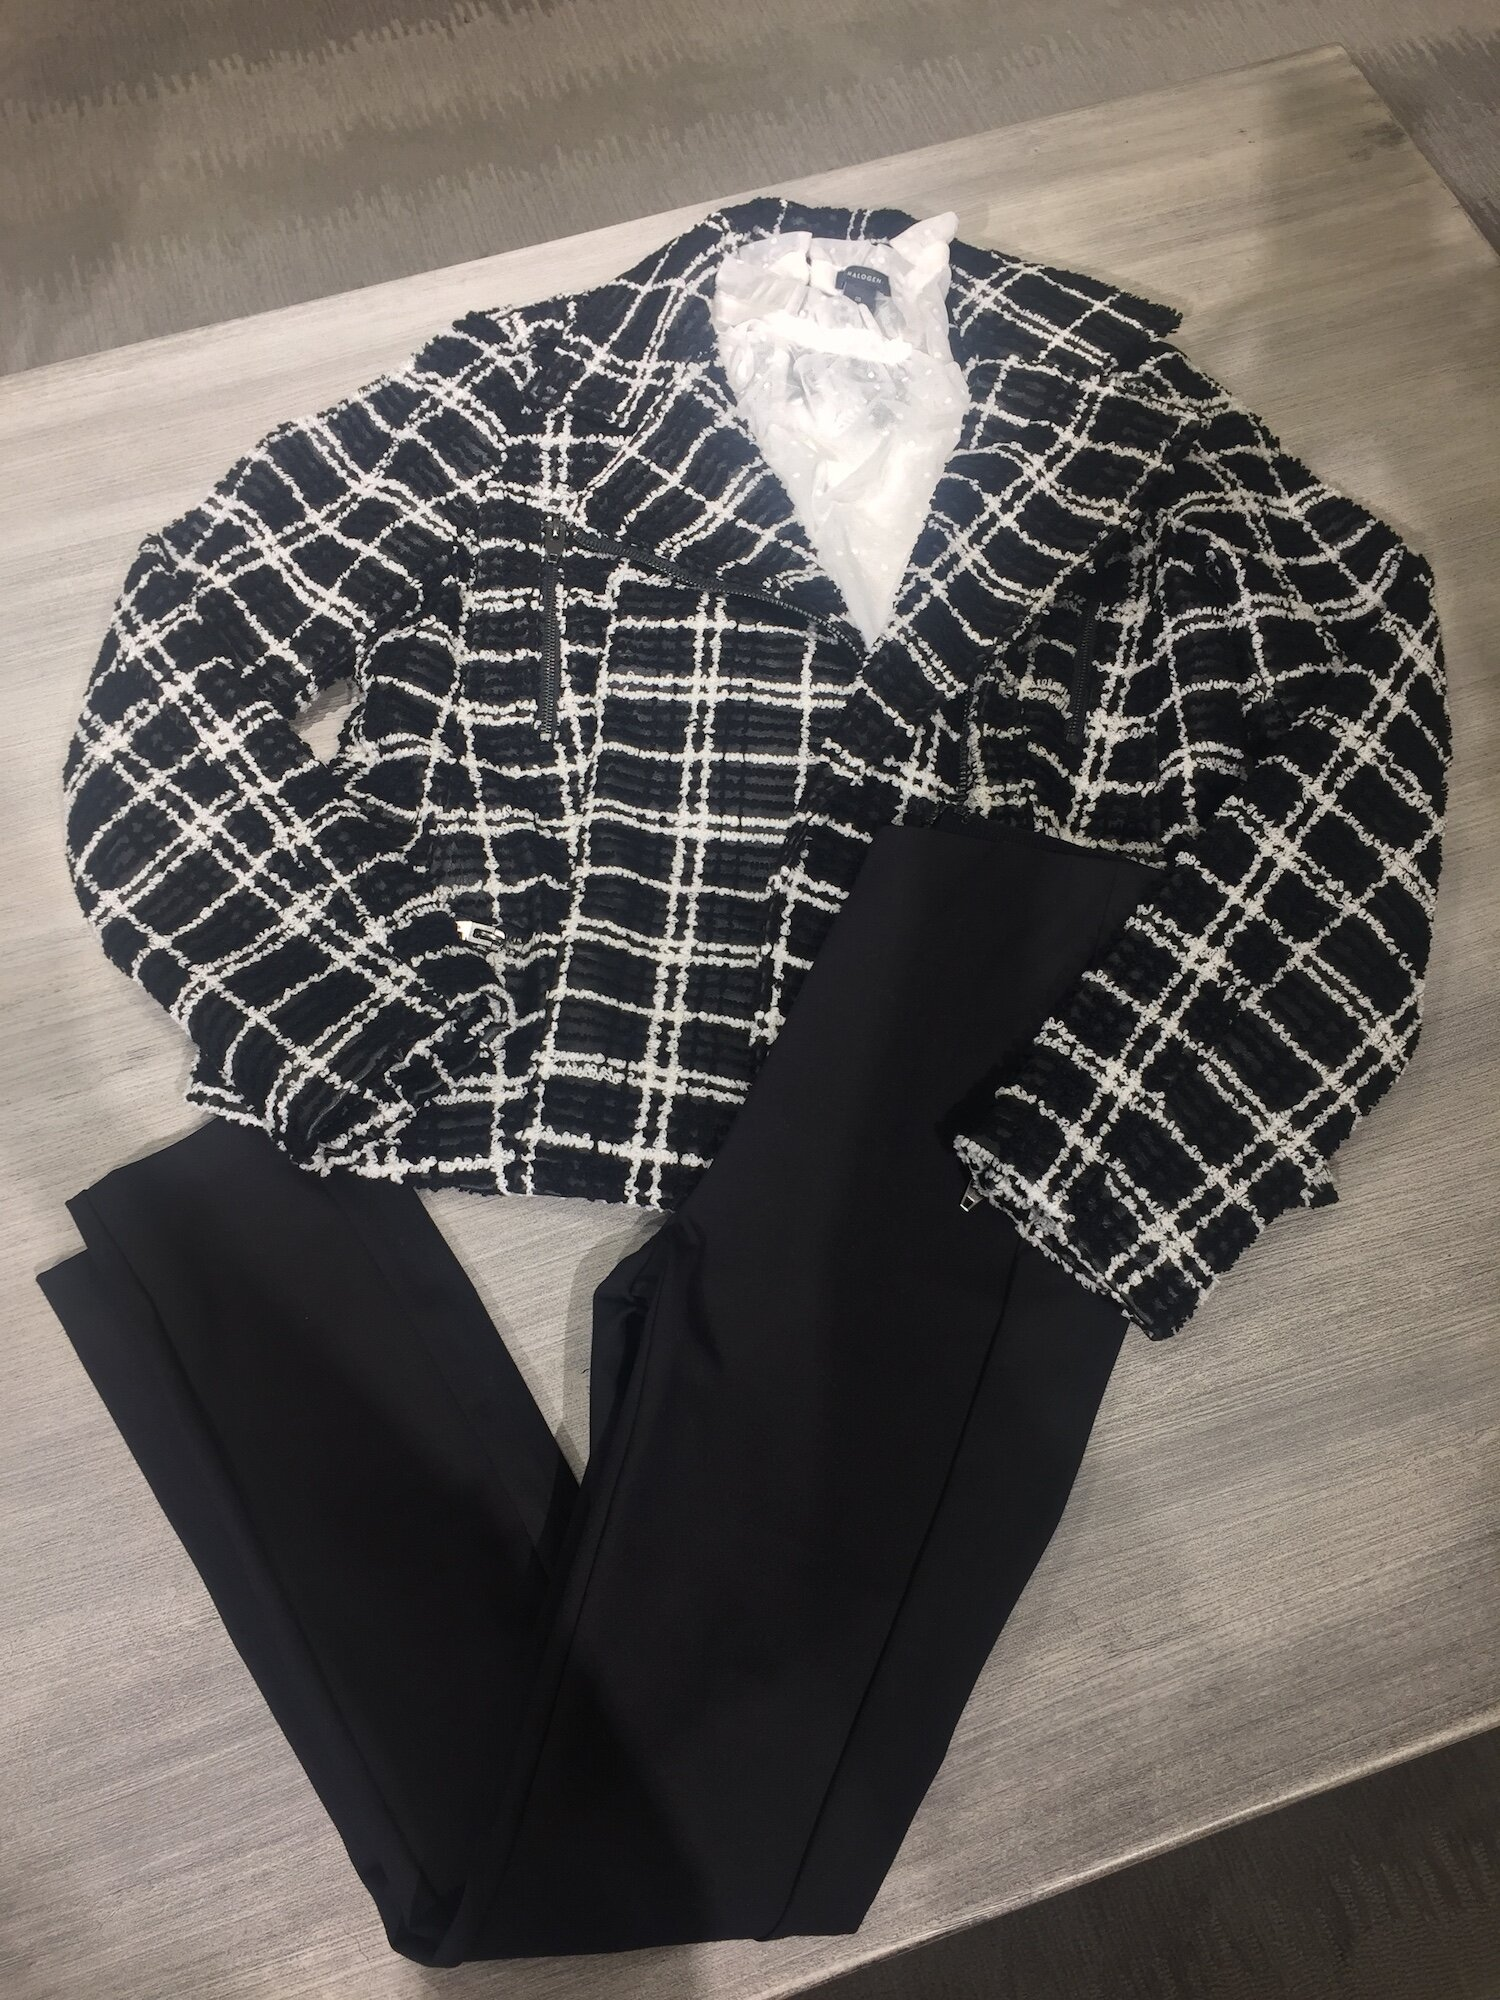 For days you're meeting clients or have a business lunch, opt for a more formal version of business casual.  This lightweight wool slim pant, feminine blouse and plaid blazer assures you'll make a good impression.  Outfit from Nordstrom.